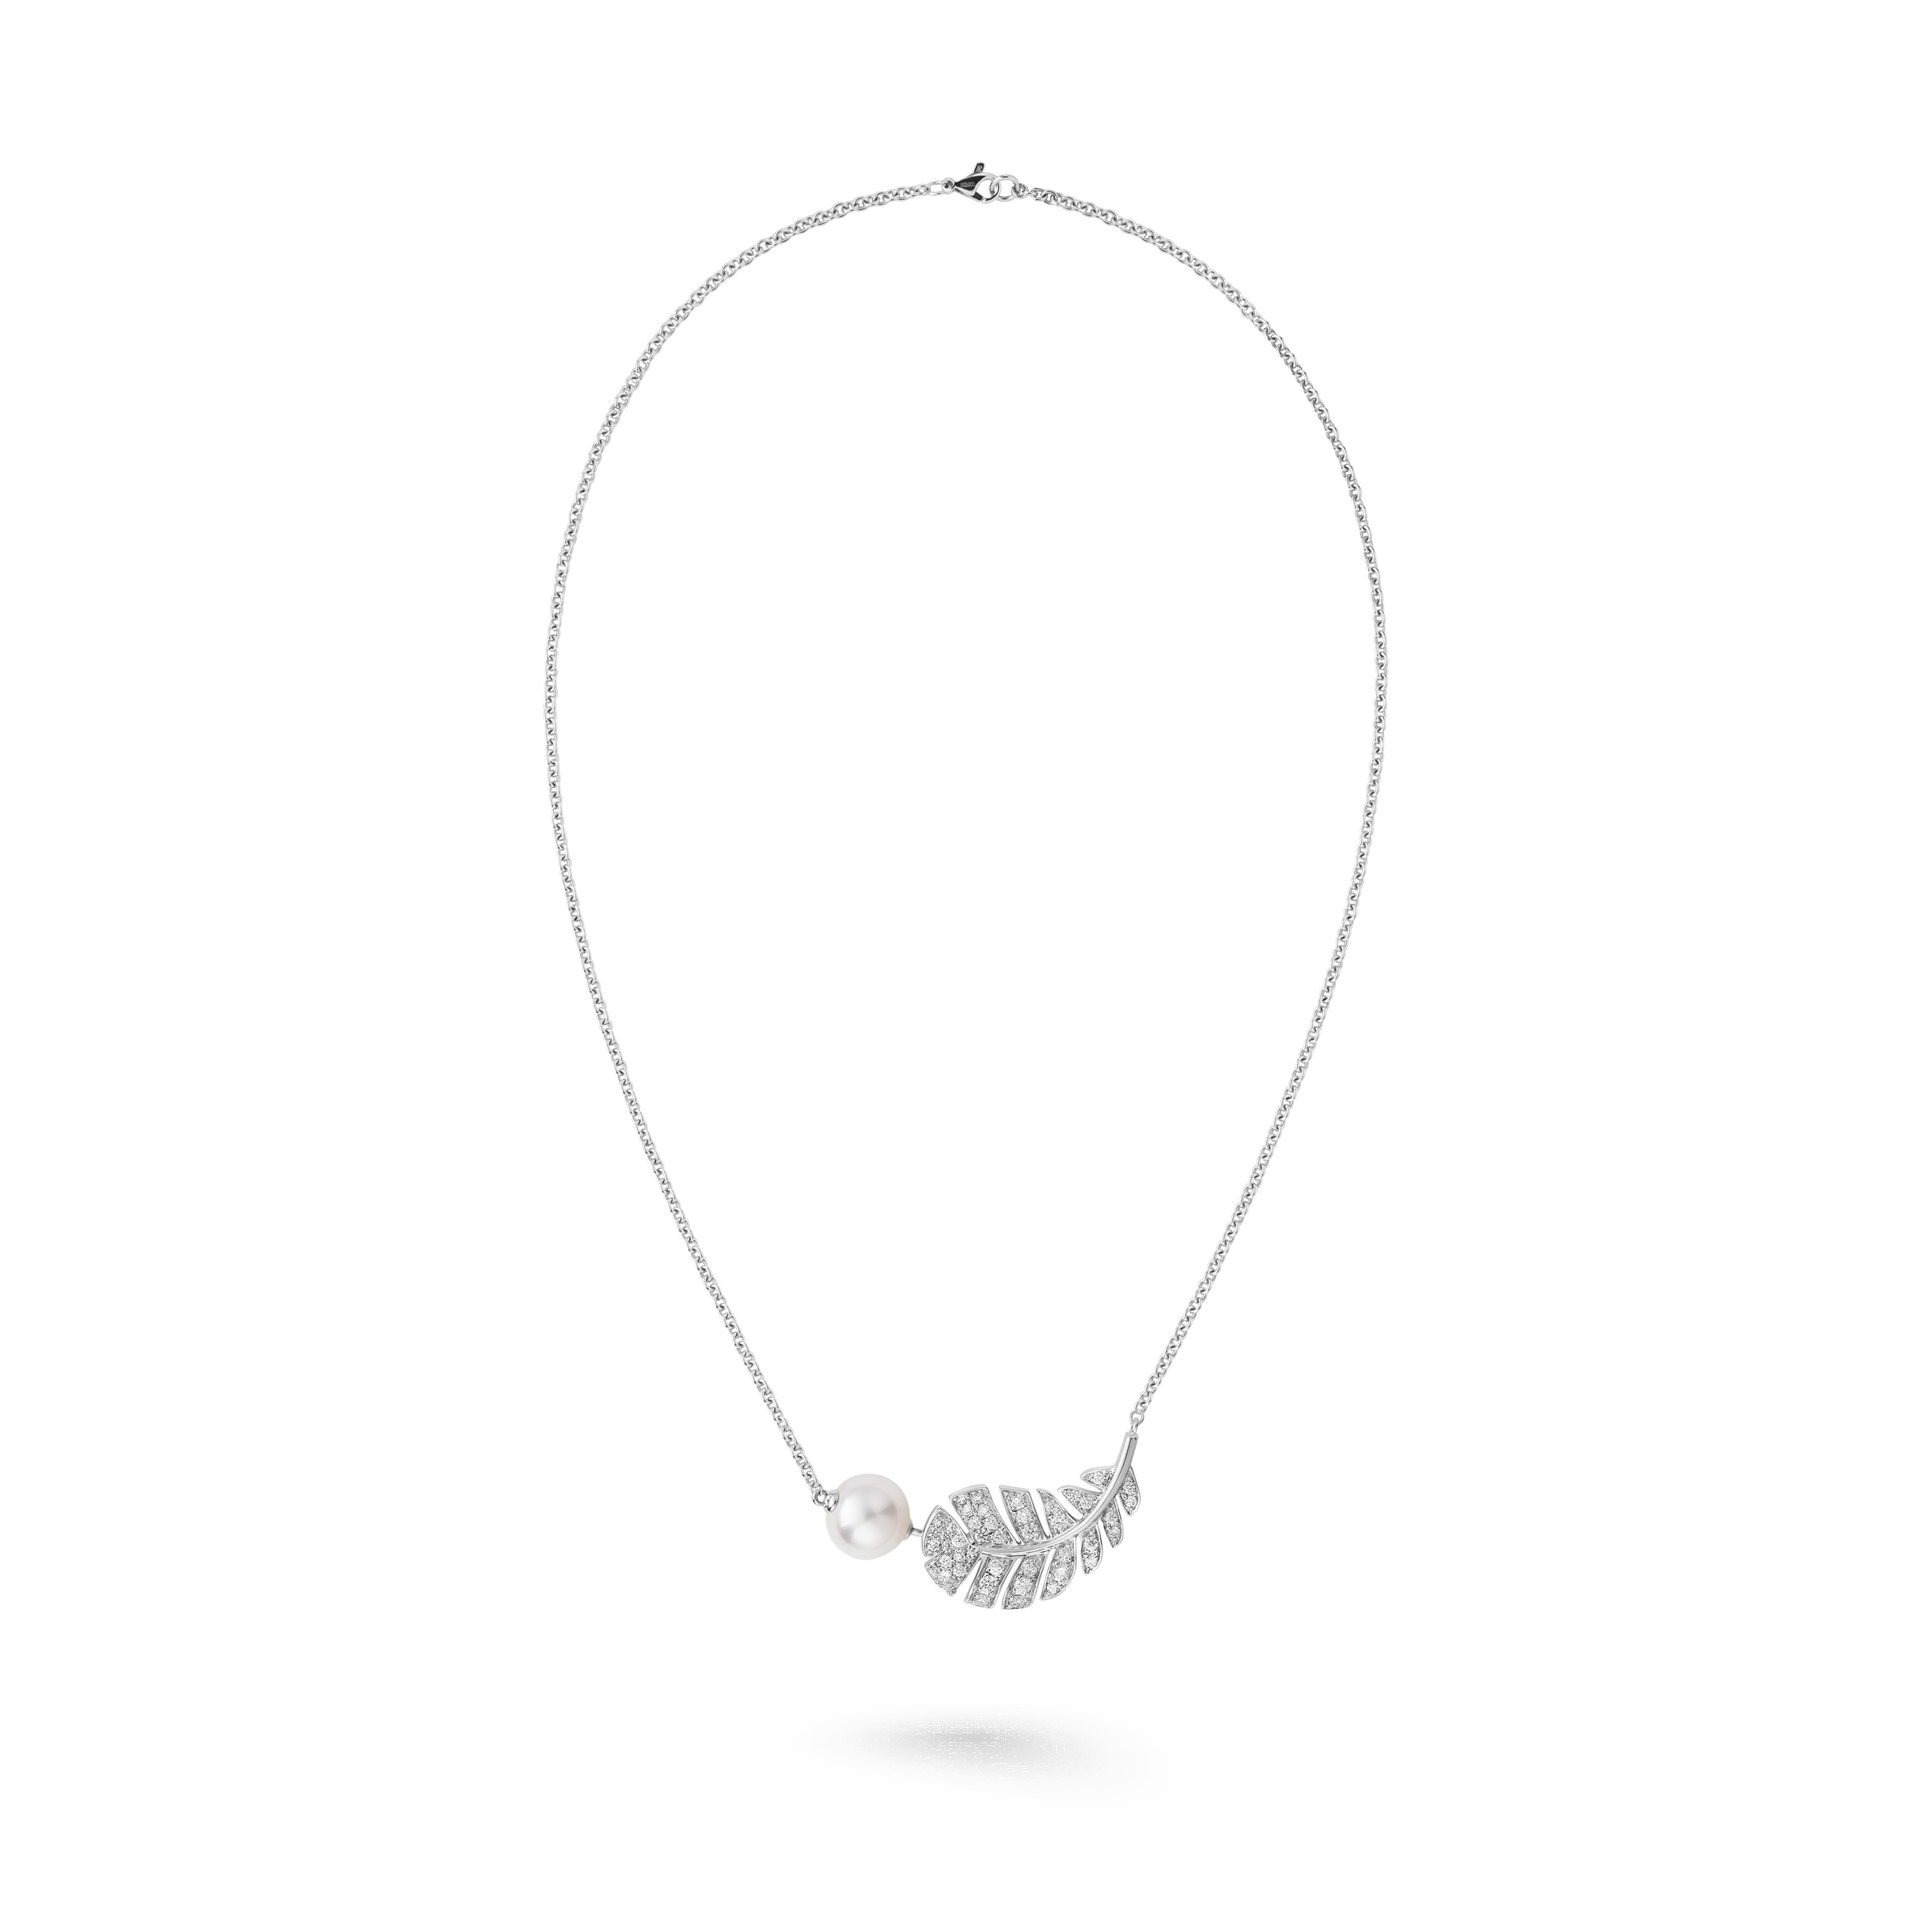 Plume de CHANEL necklace - 18K white gold, diamonds, cultured pearl - CHANEL - Default view - see standard sized version